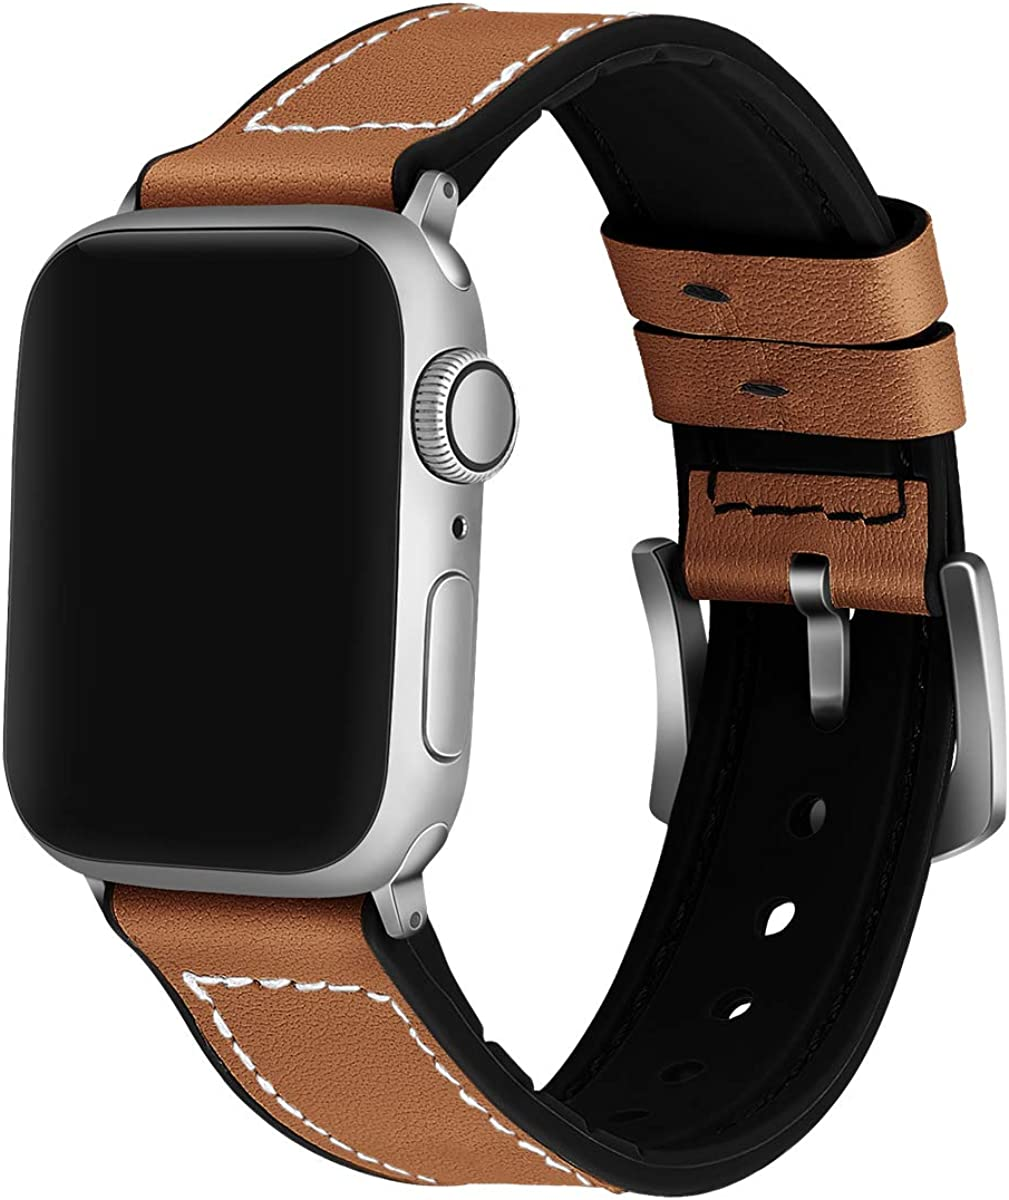 iGK Compatible with Apple Watch Band 38mm 40mm 42mm 44mm, Sweatproof Brown Leather and Soft Silicone Replacement Straps for Women Men iWatch Series 5/4/3/2/1